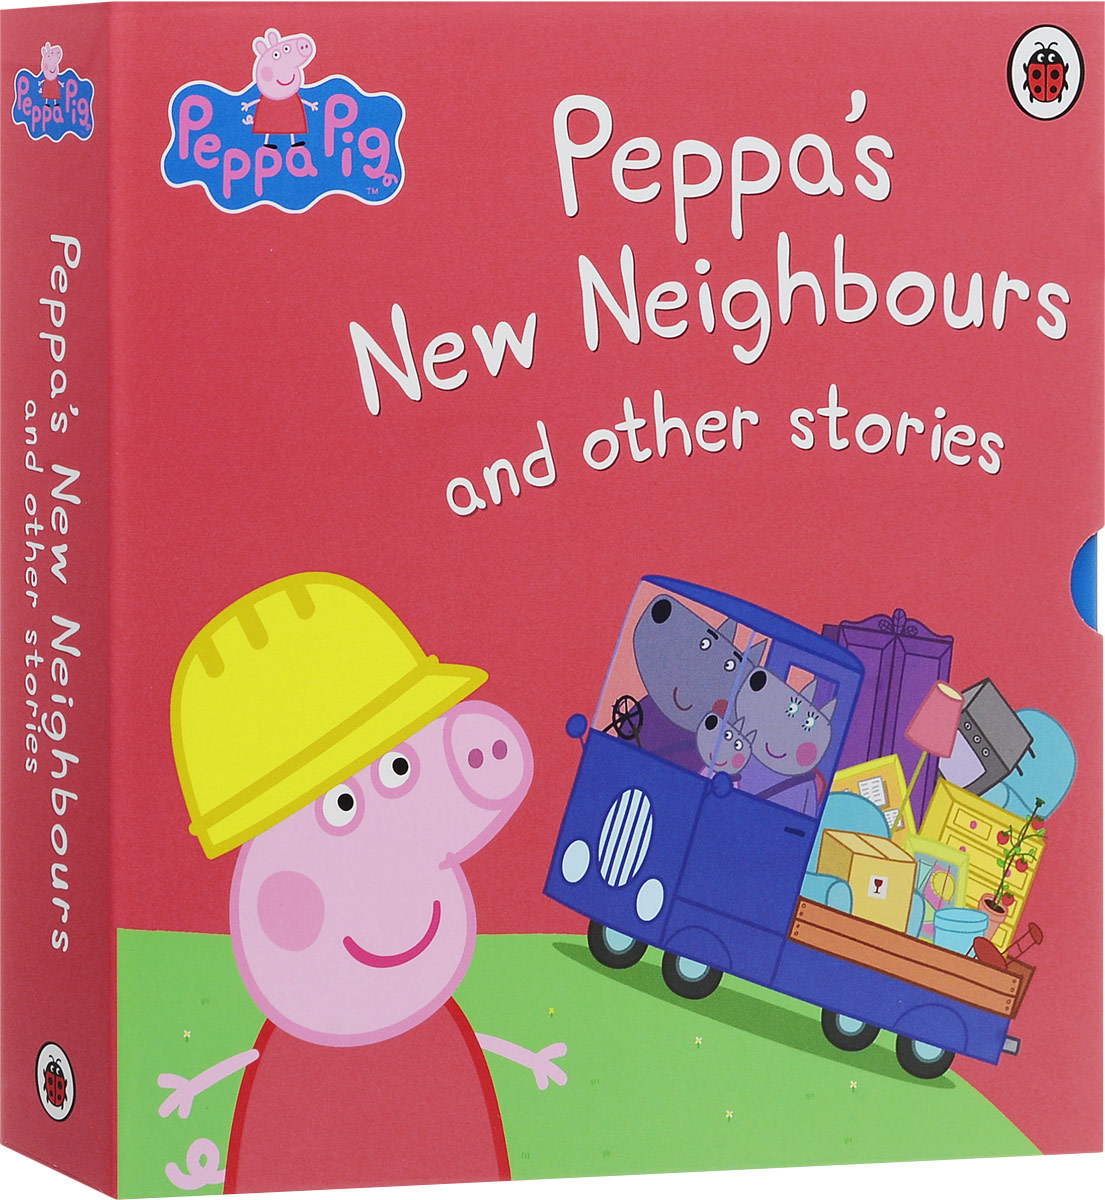 Peppa's New Neighbours and Other Stories (комплект из 5 книг) the john green collection комплект из 5 книг